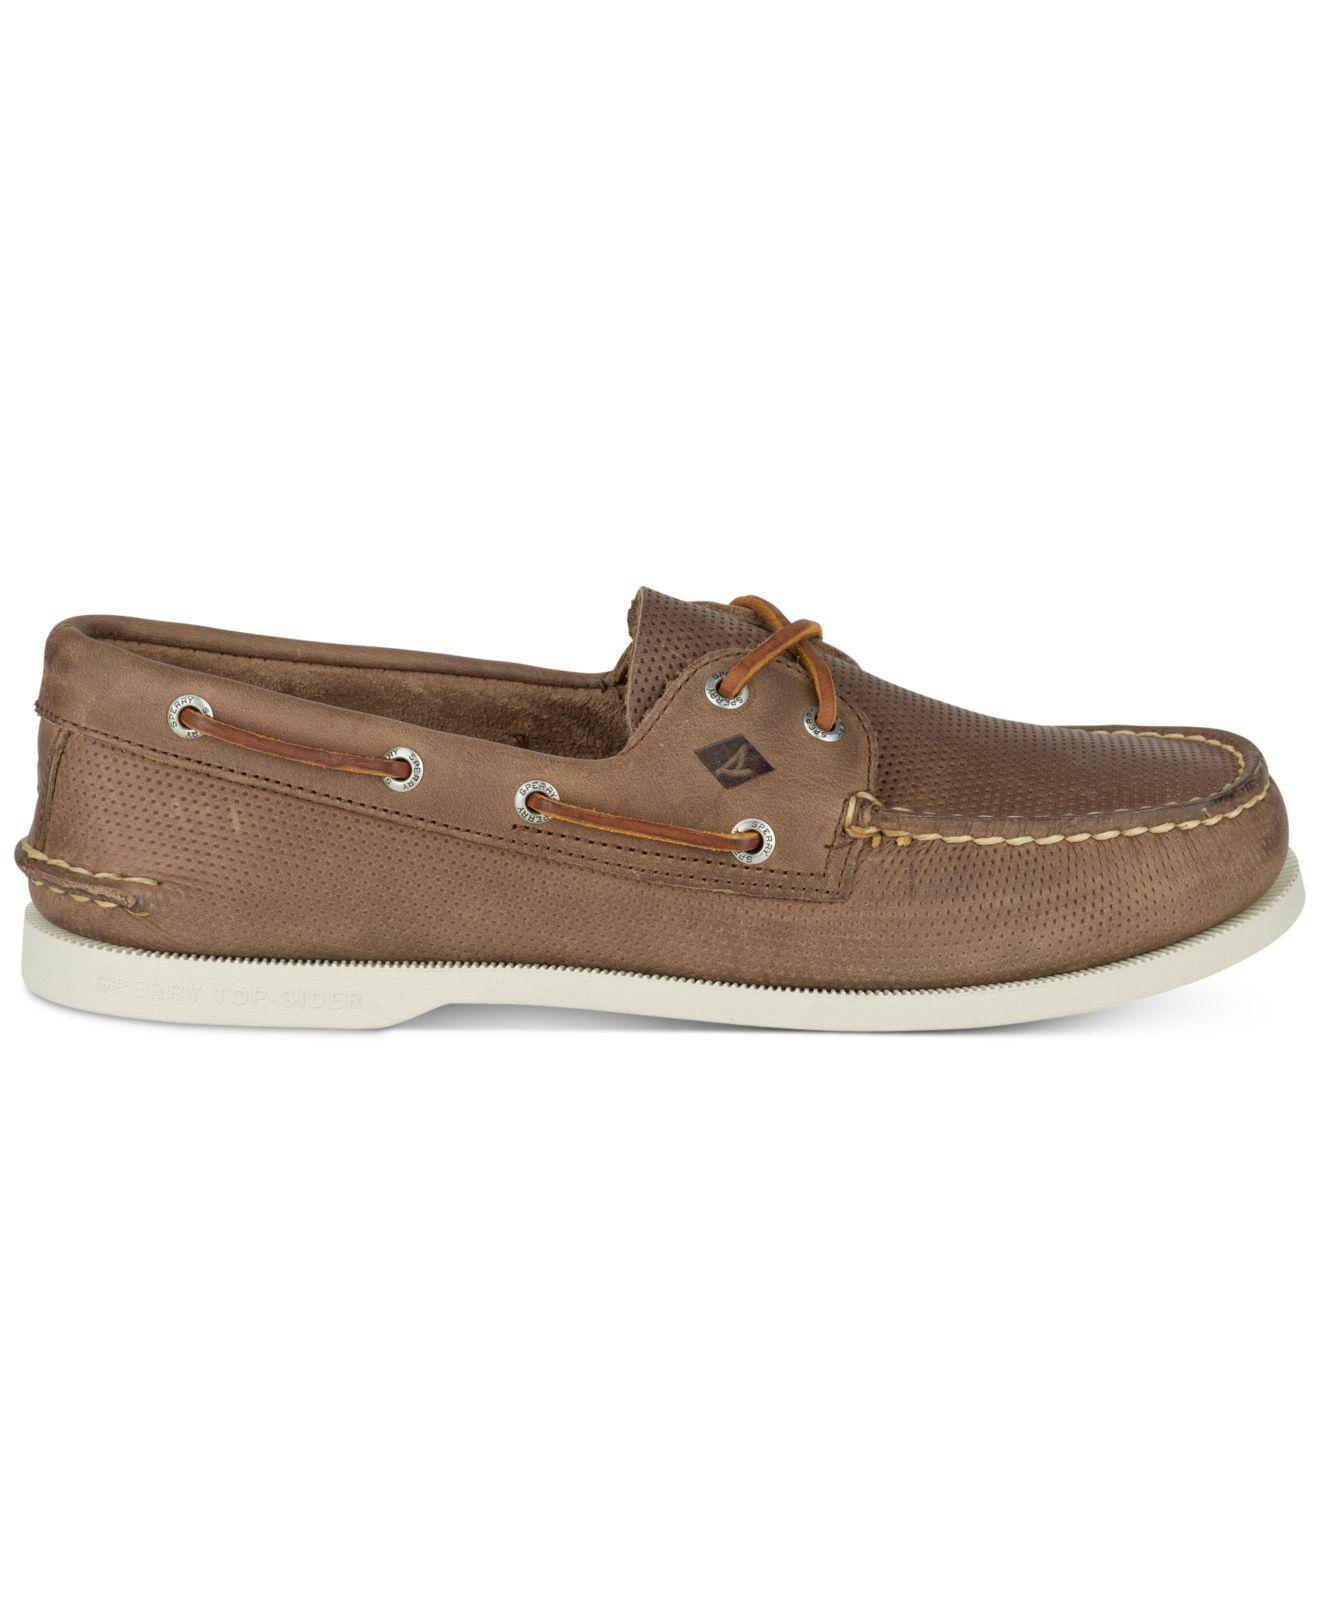 Macys Mens Shoes Sperry